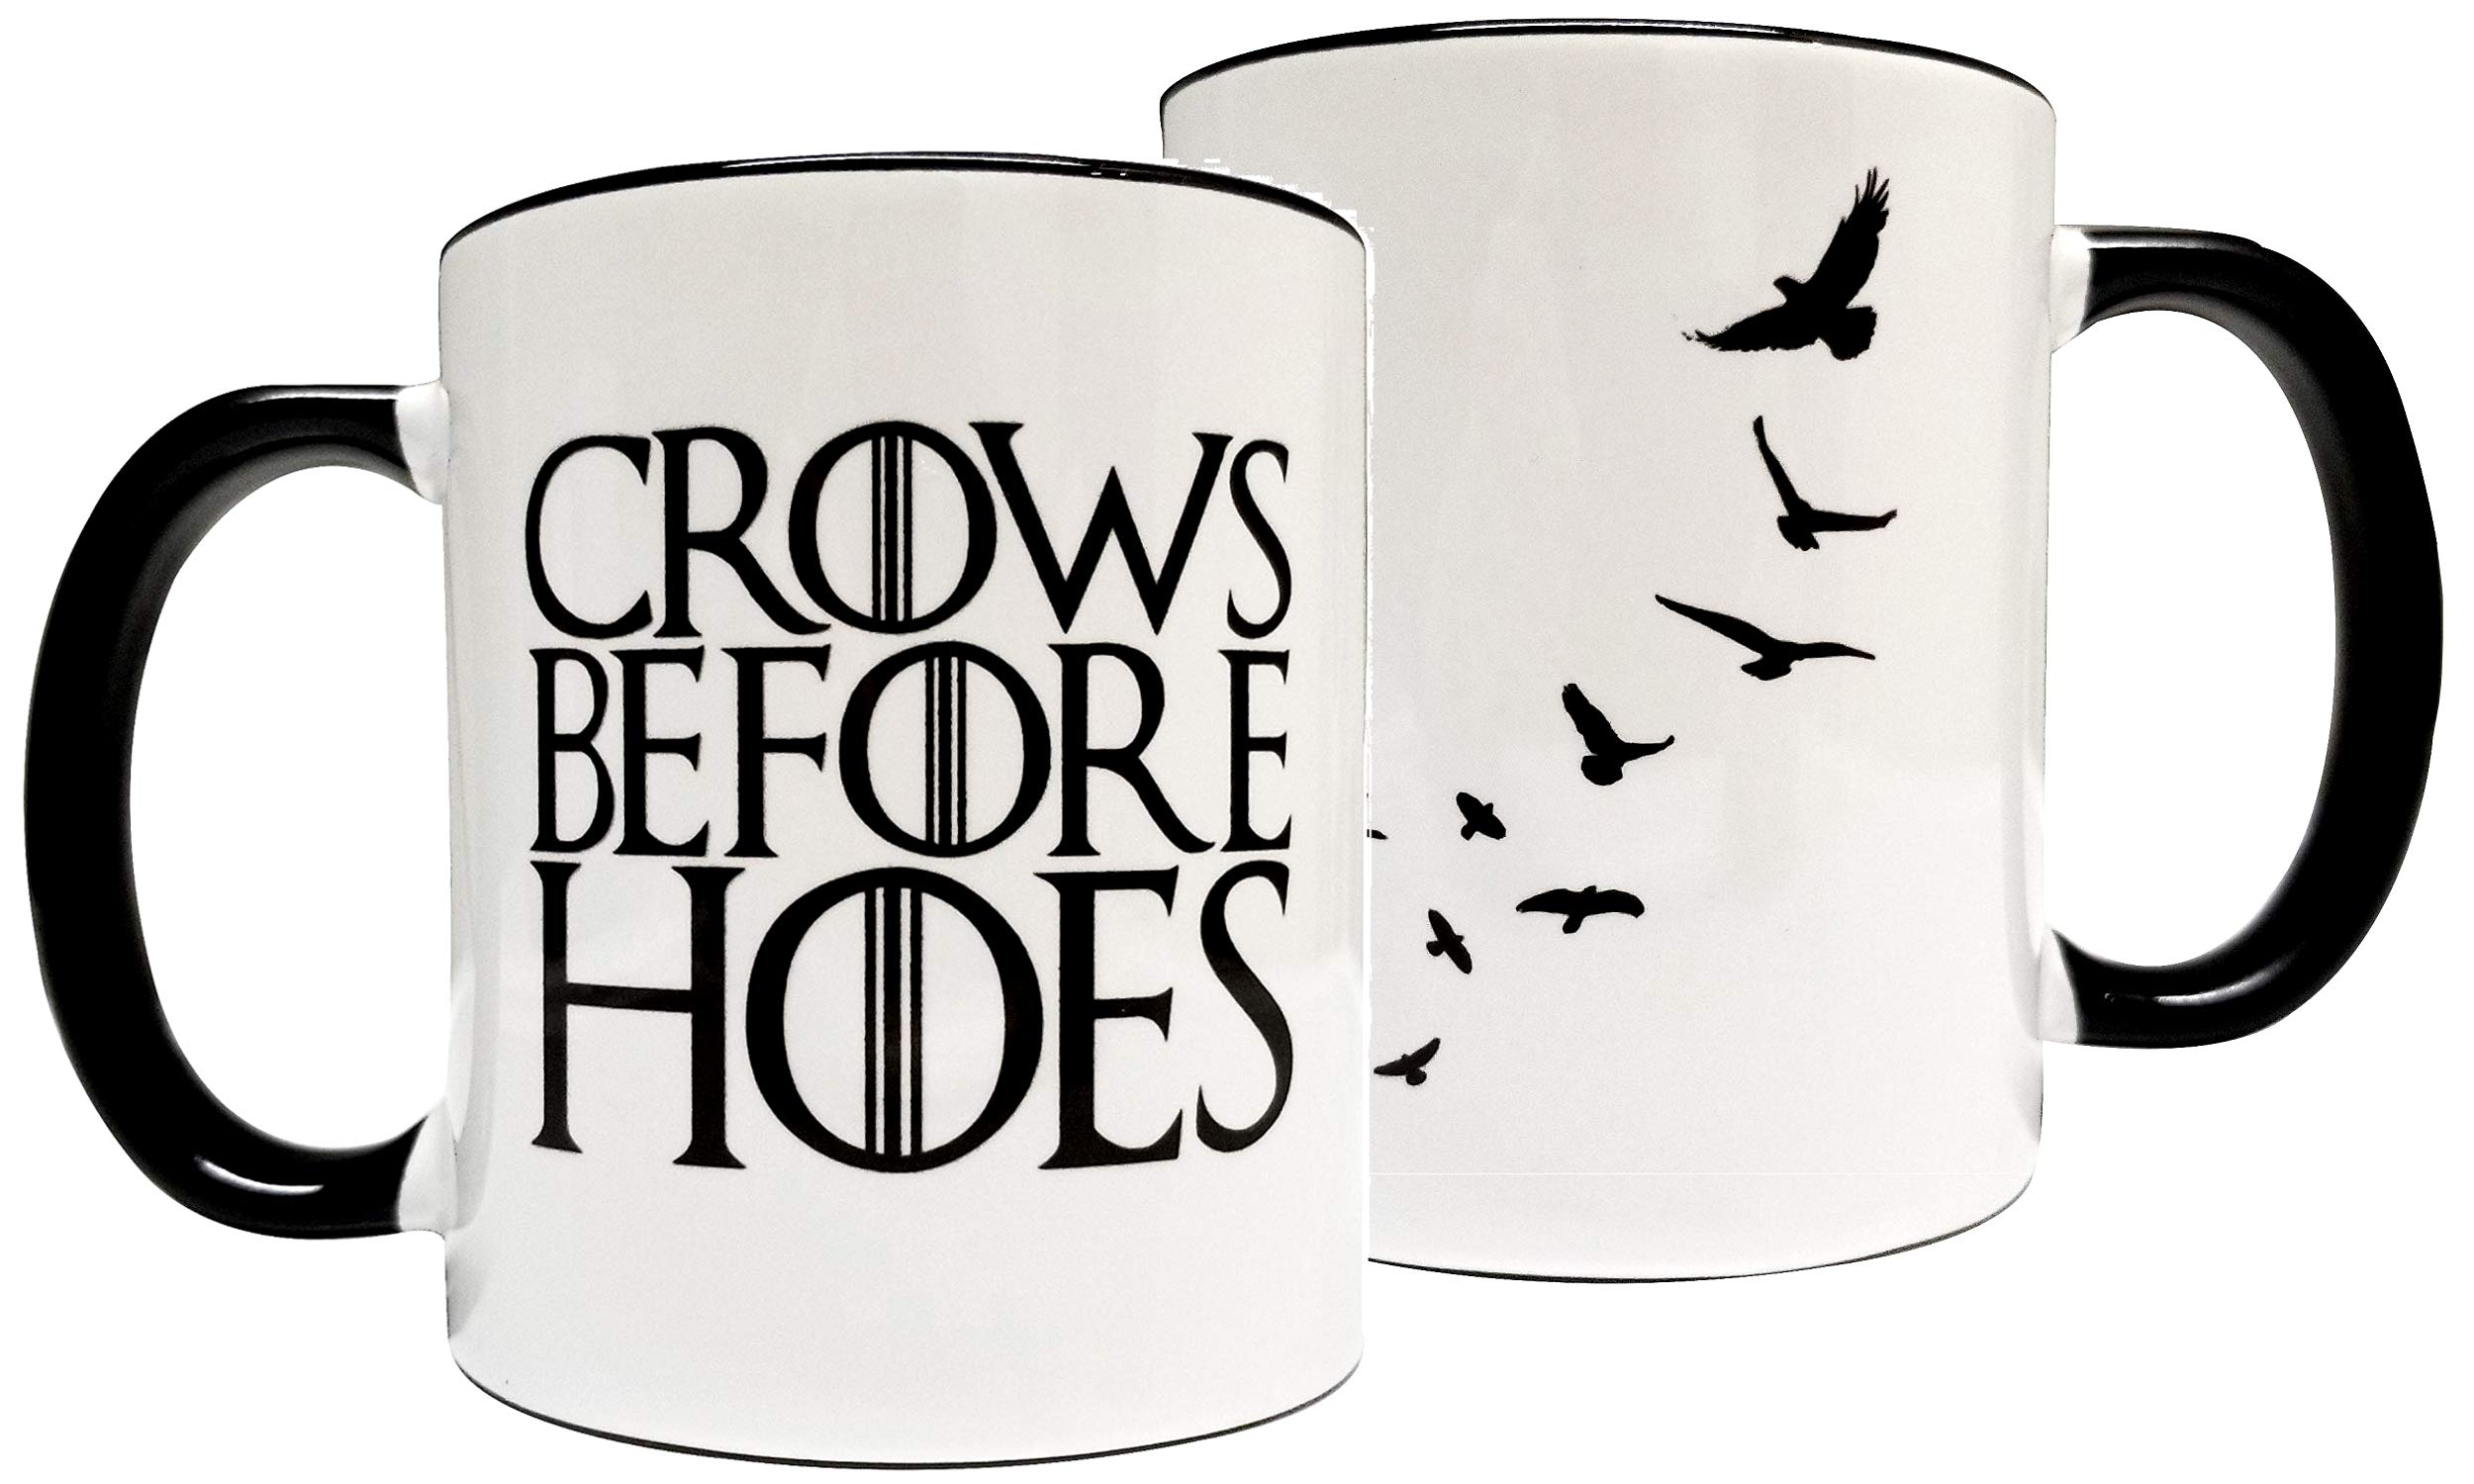 Crows before Hoes 11oz Grade A Quality Ceramic Mug/Cup - Inspired by Game of Thrones The Nights Watch - Foam Box